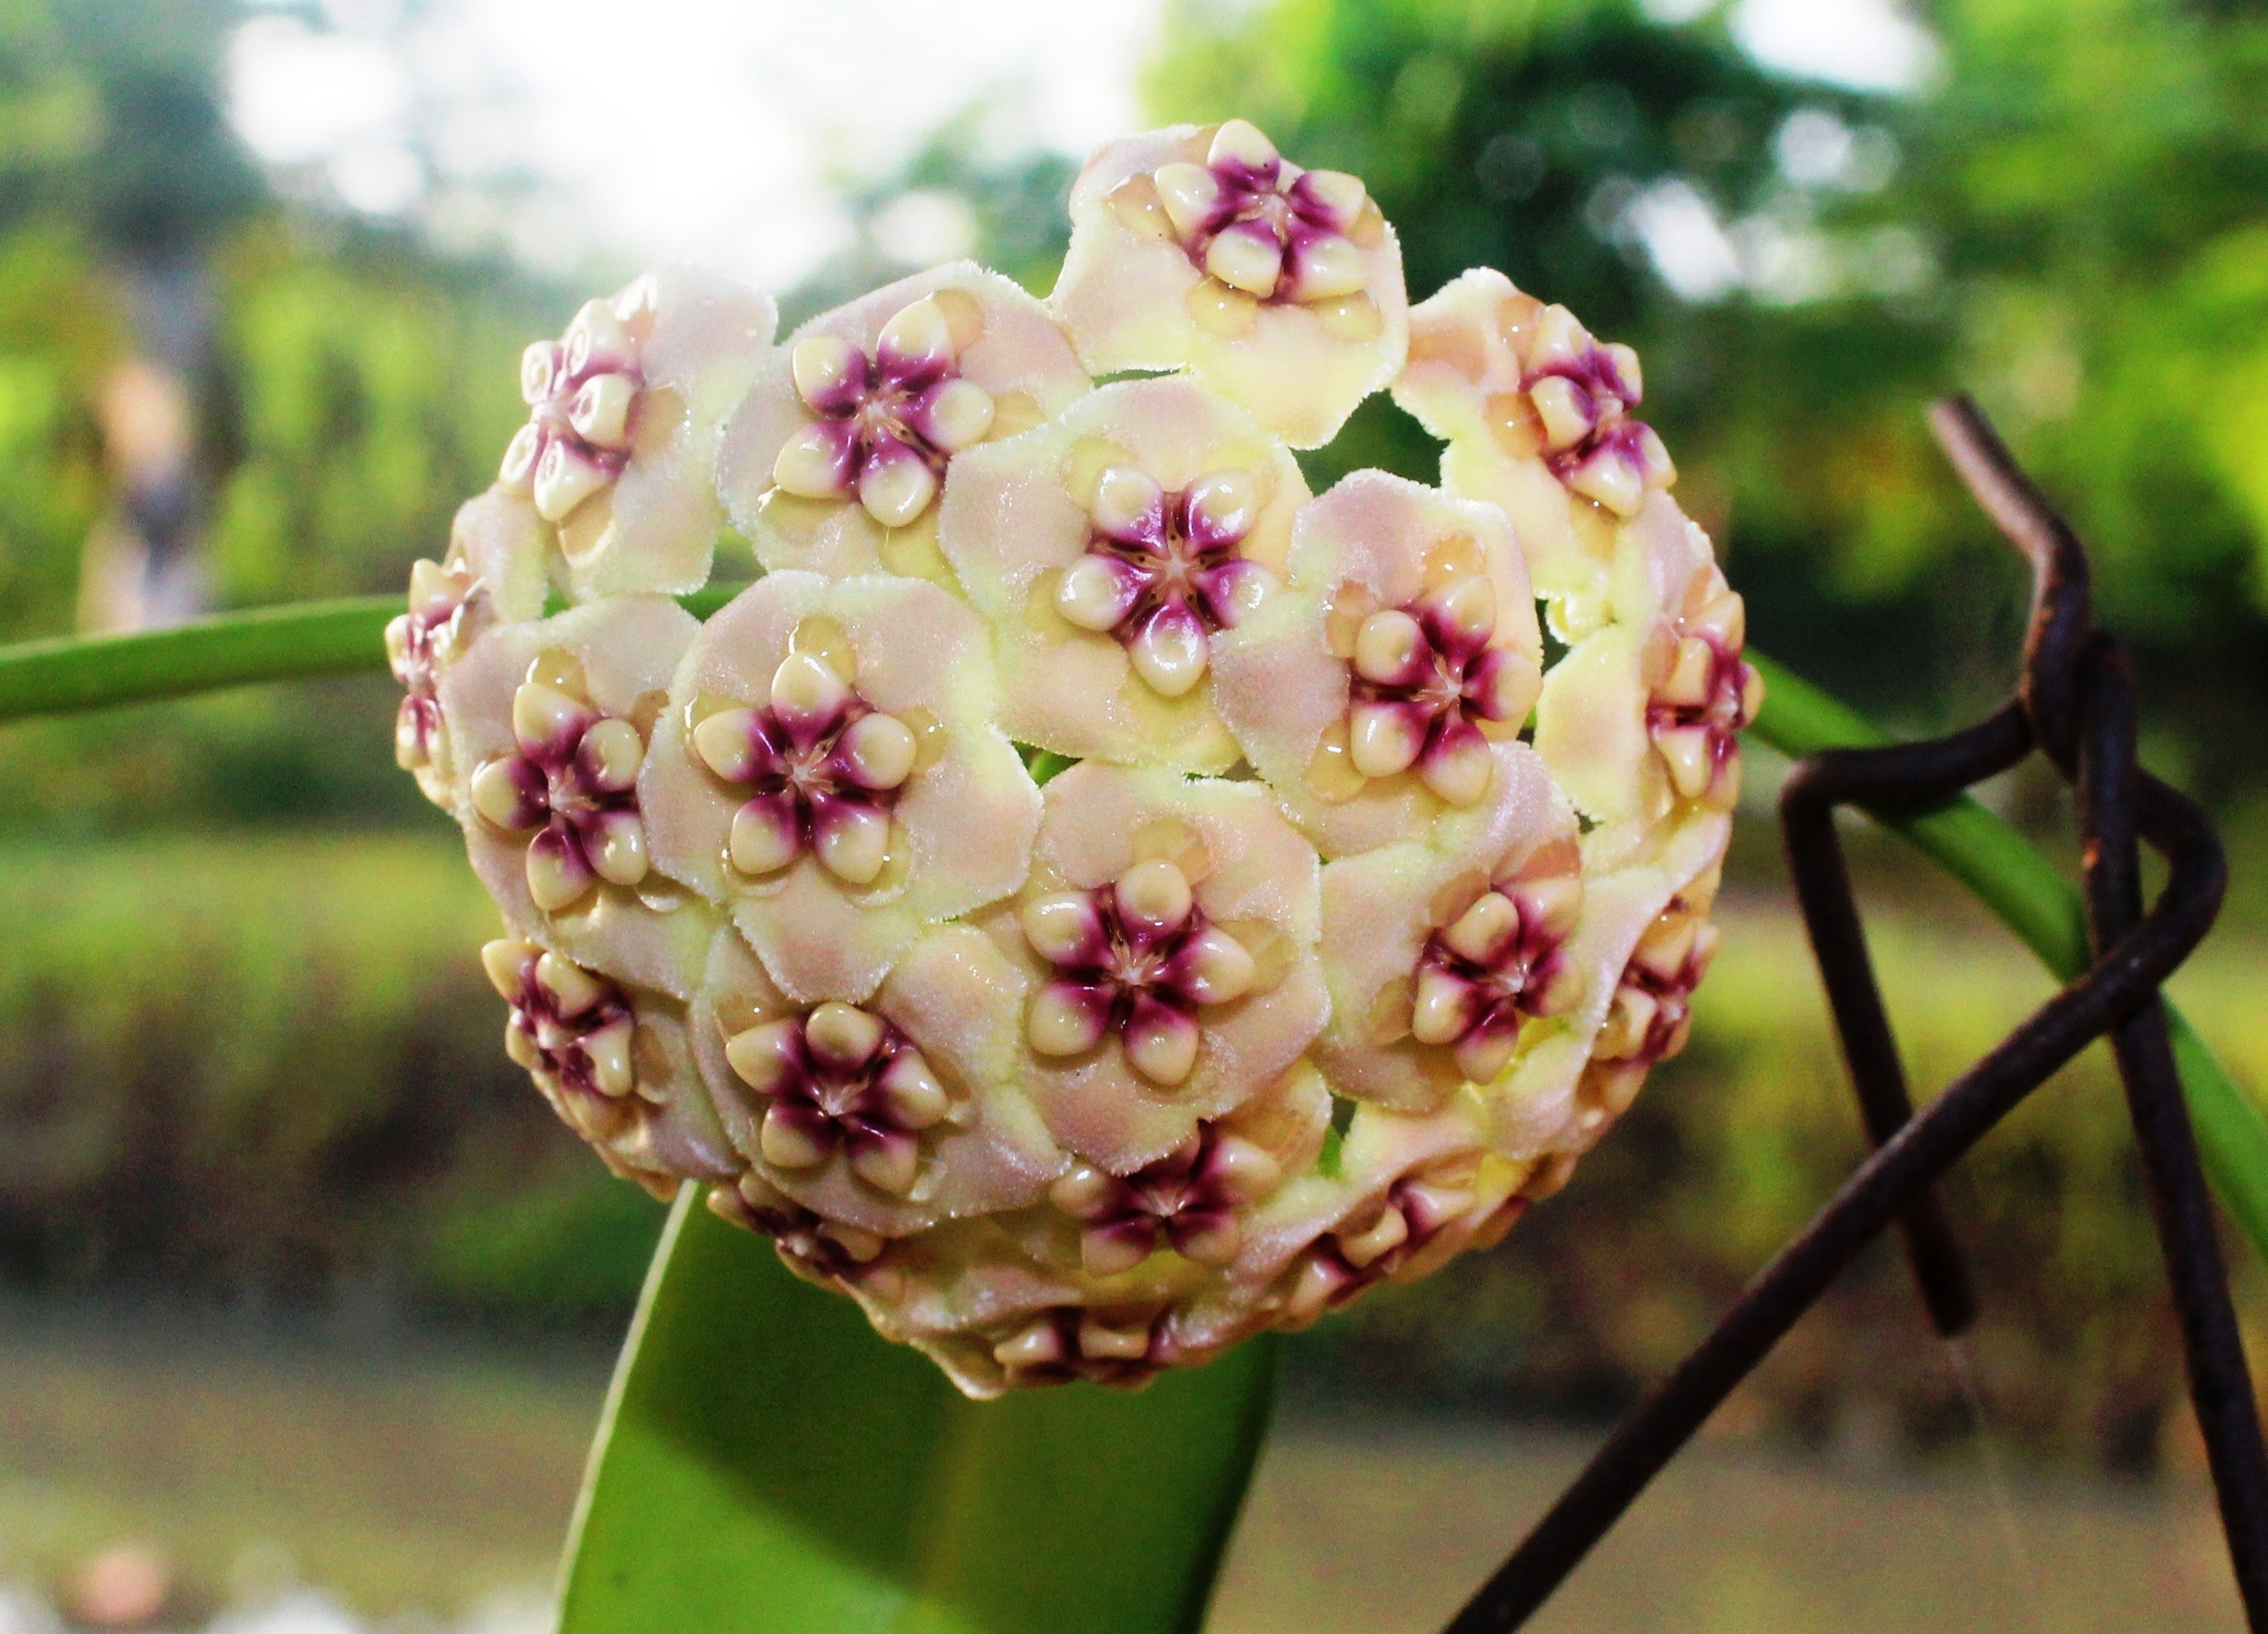 Hoya plant - Science and Digital News